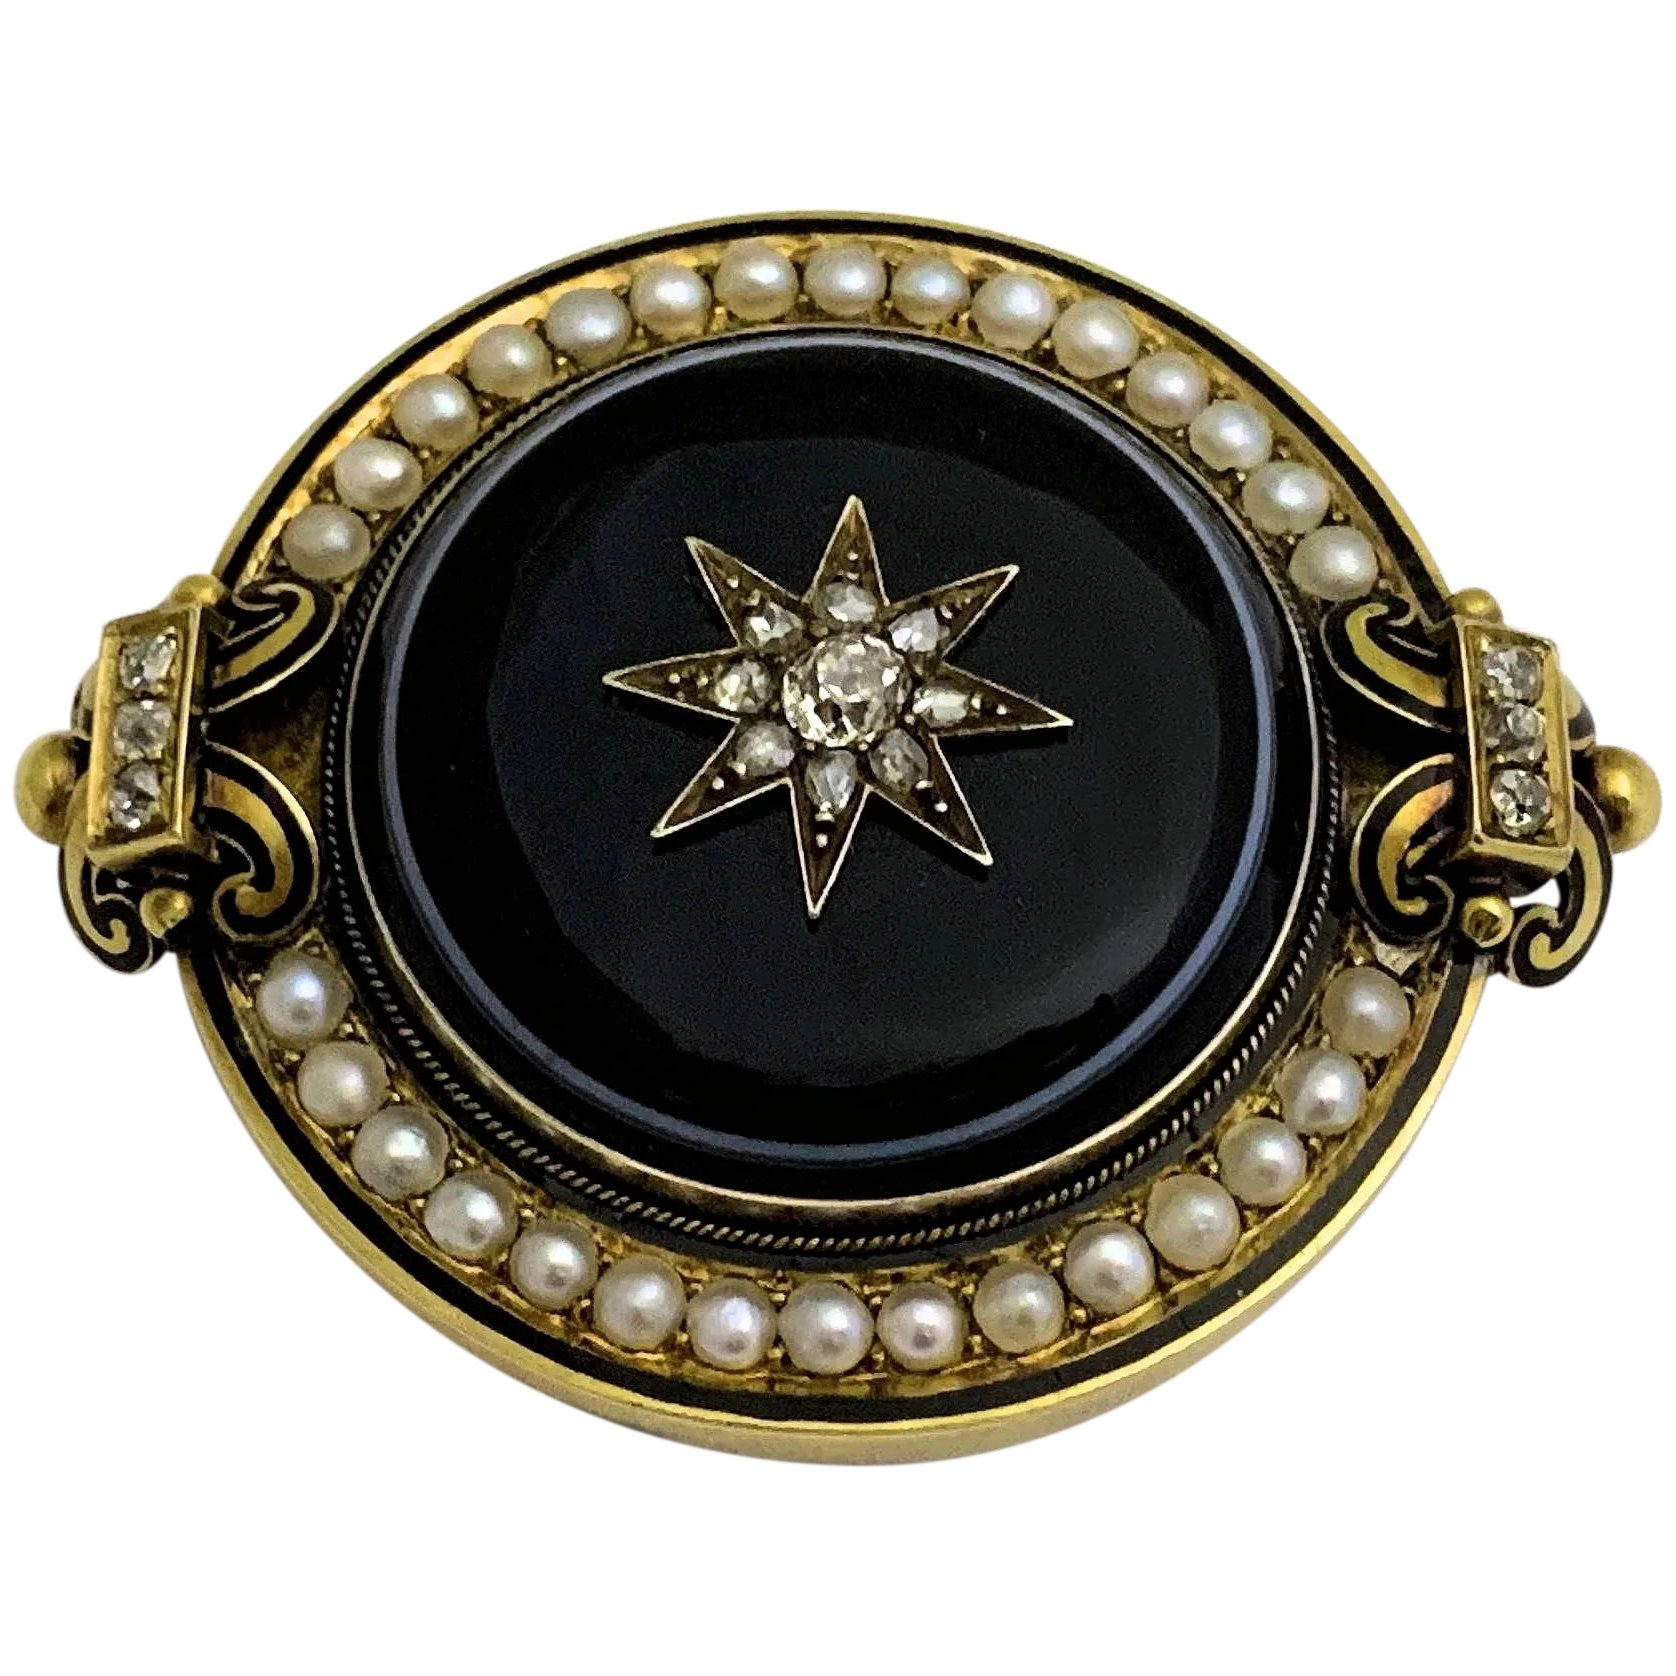 Victorian Enamel and Gold Brooch Antique Mourning Hair Brooch Victorian Gold Pendant